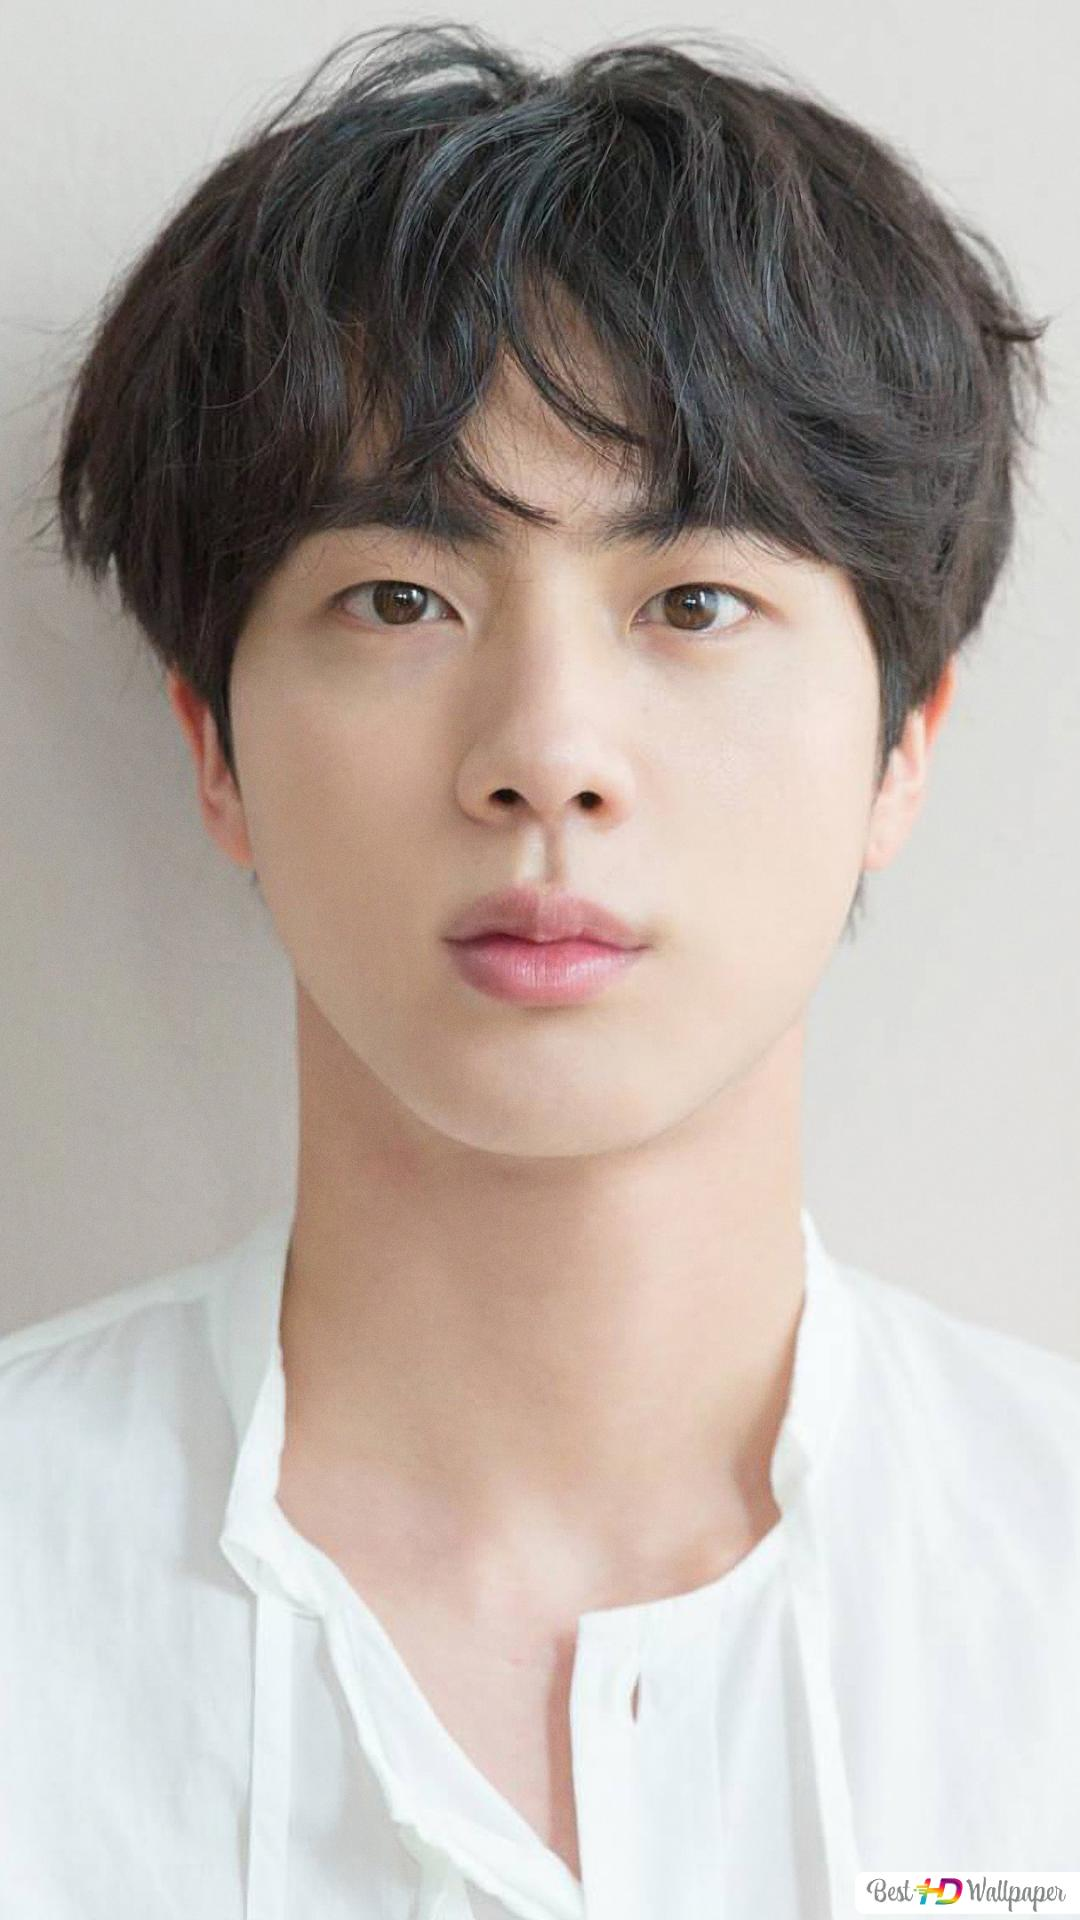 k pop band bts idol jin wallpaper 1080x1920 53635 165